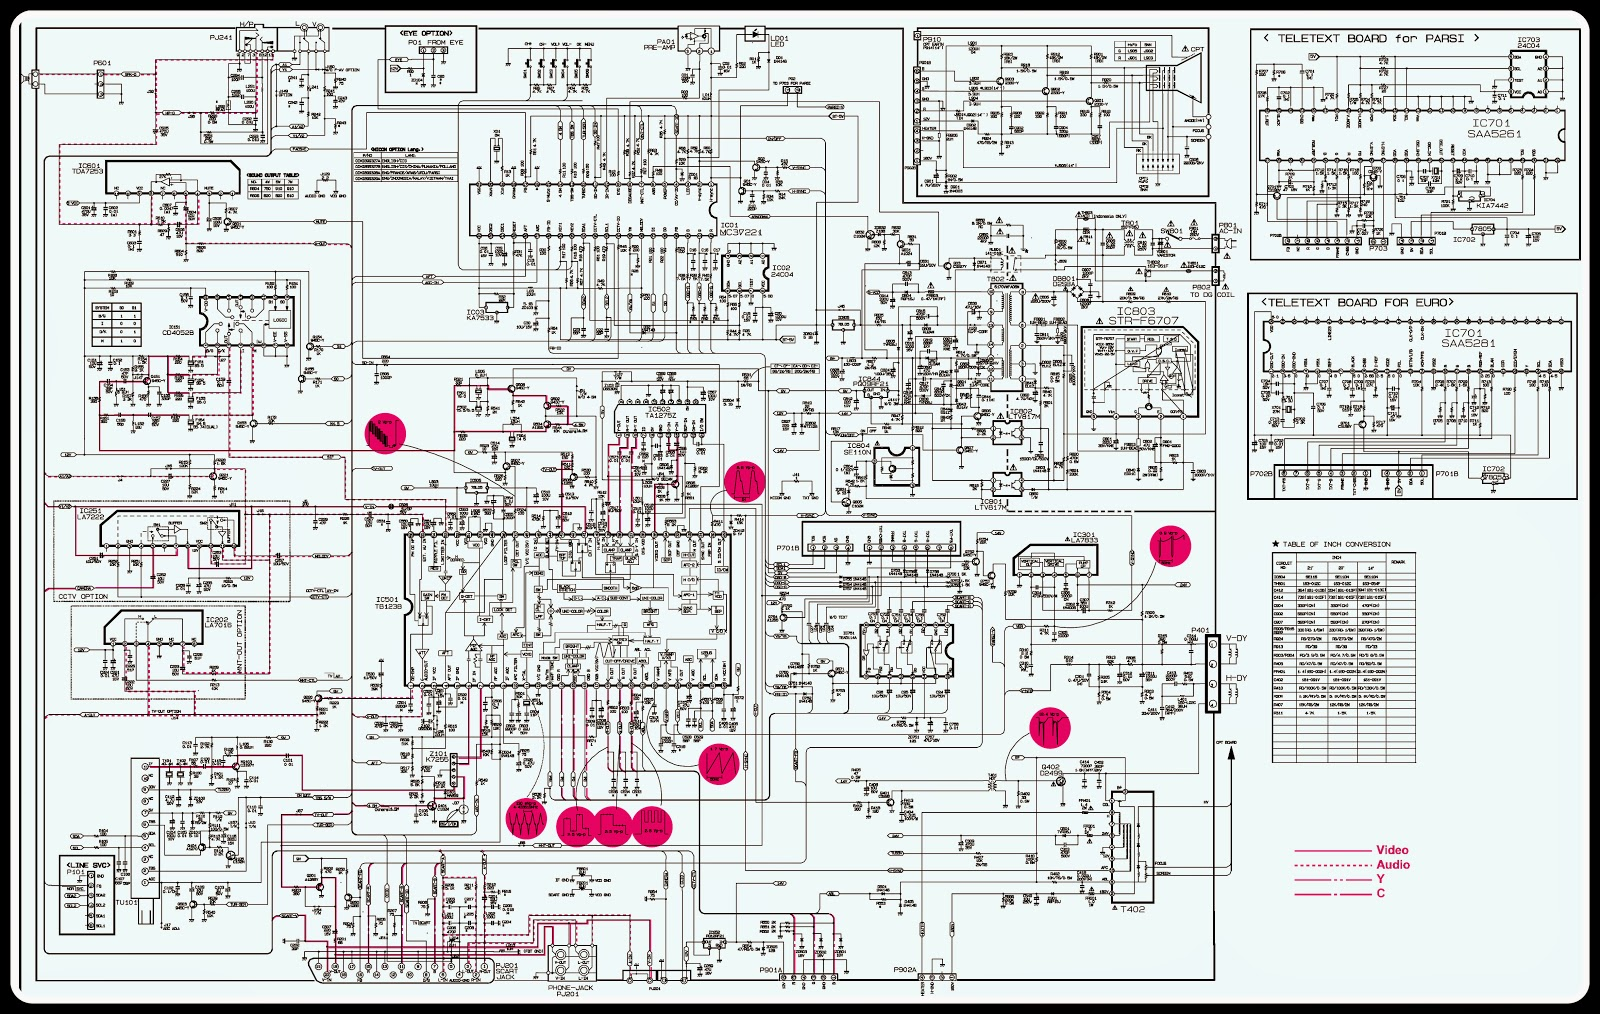 lg%2Bcrt%2Btv.bmp lg cf20f schematic (circuit diagram) 20 inch crt tv electro help samsung led tv wiring diagram at bakdesigns.co